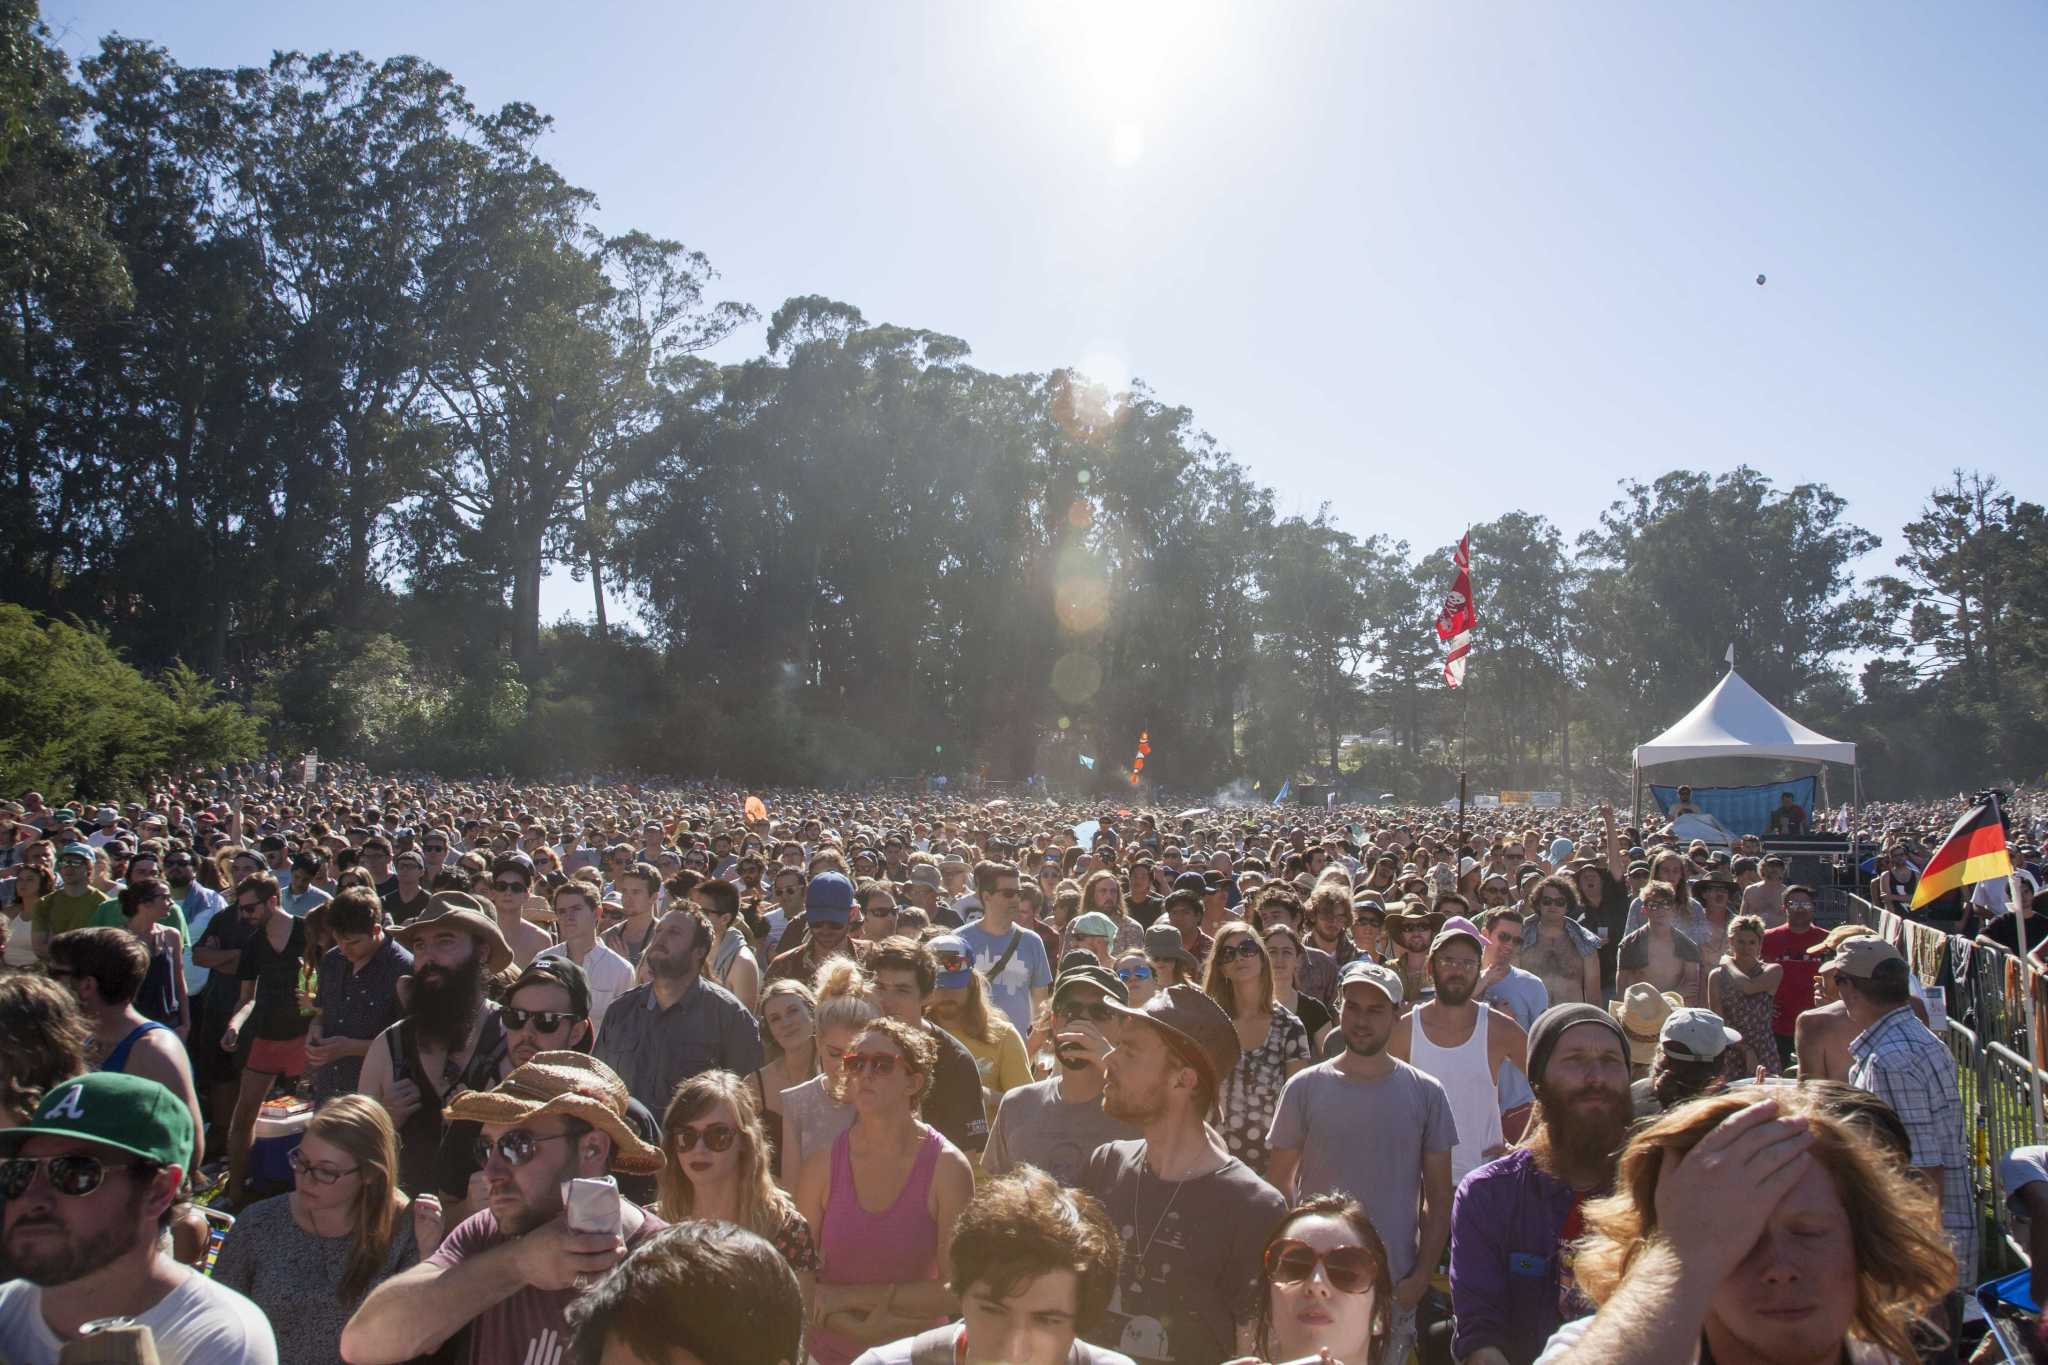 Meet Dave Rapa, an SF State alum and performer at this past weekend's Hardly Strictly Festival